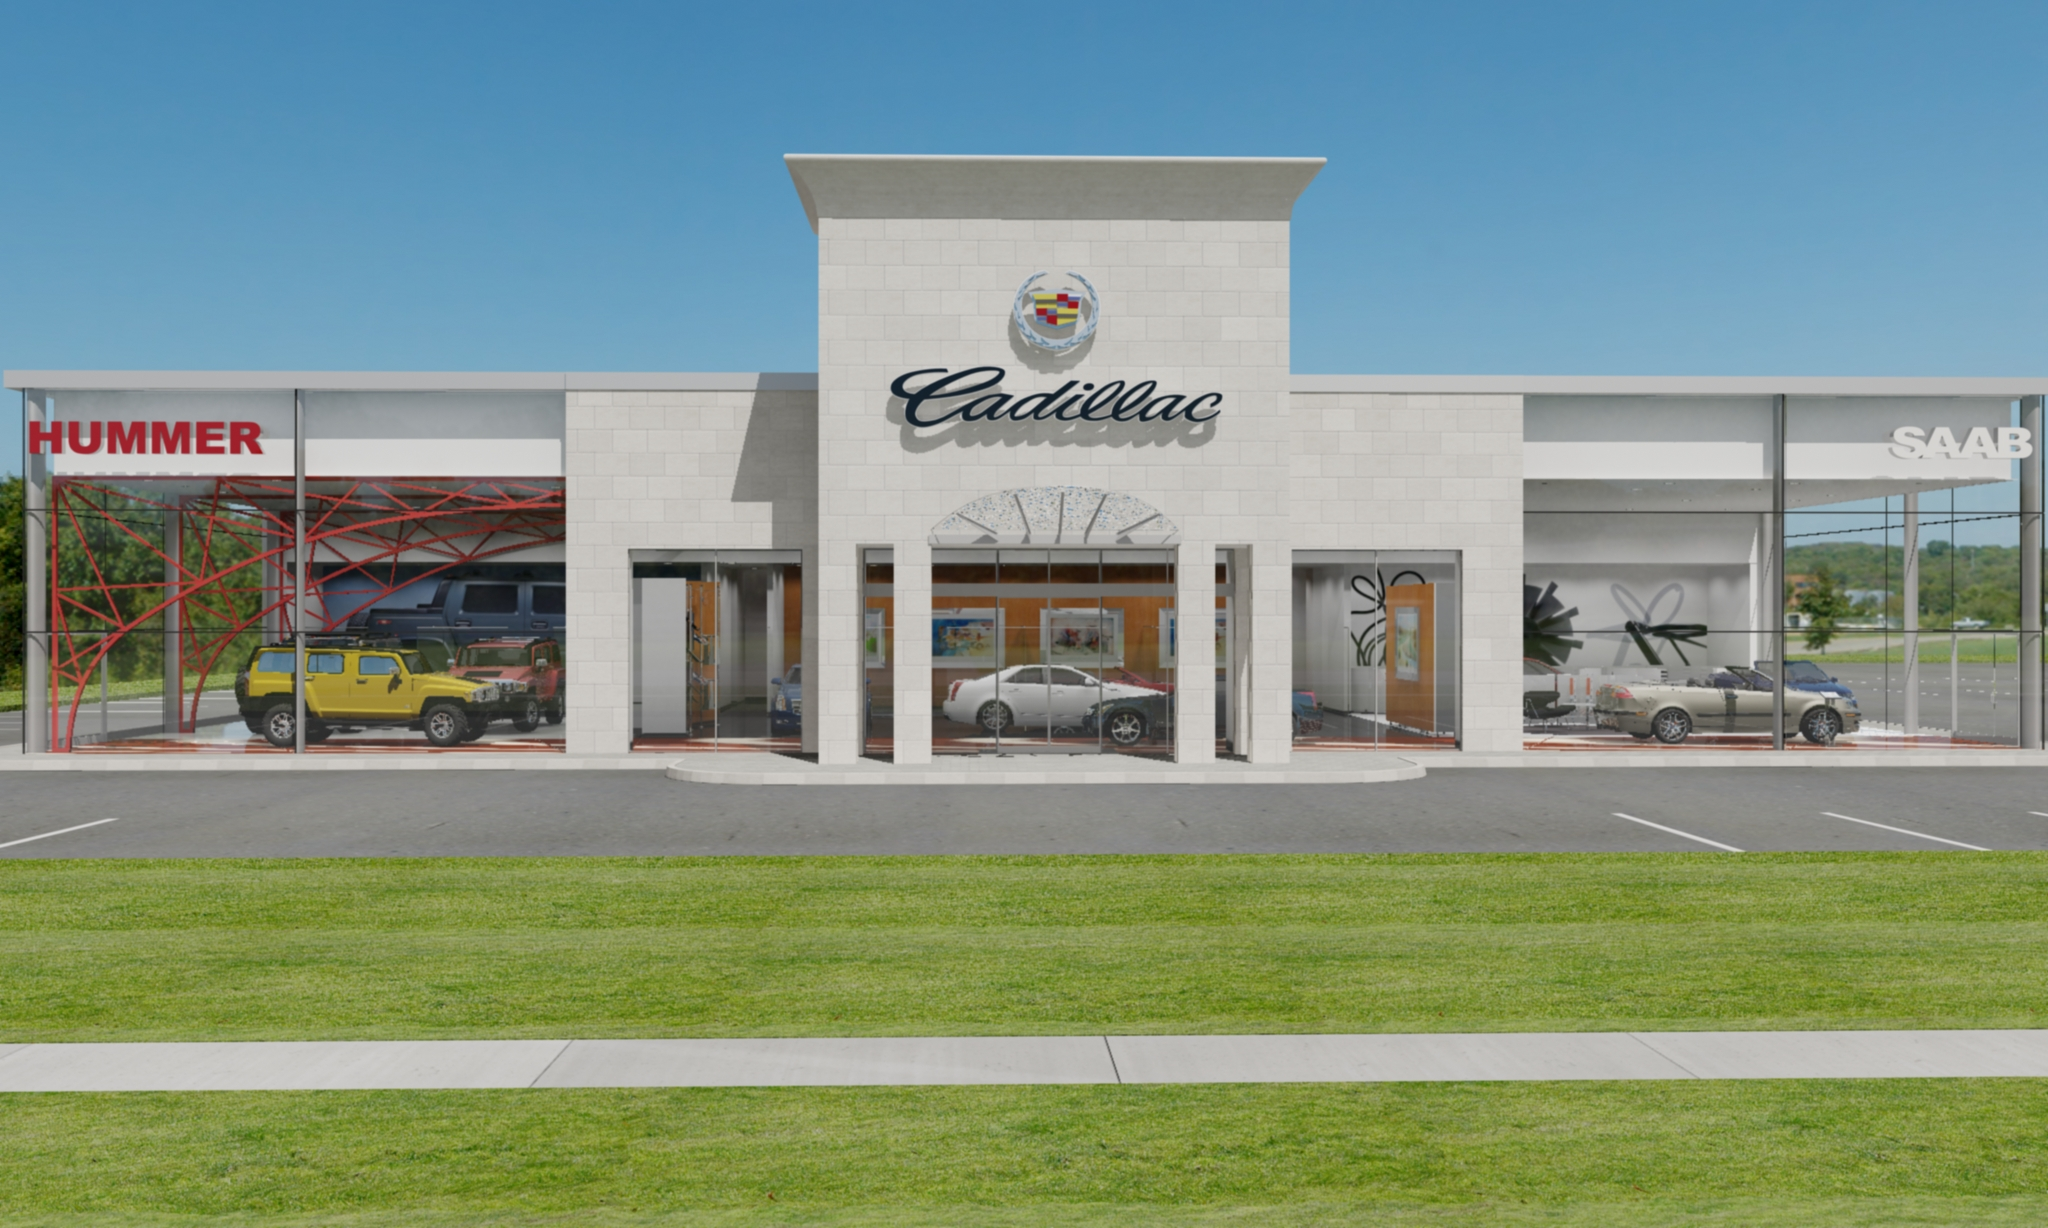 Cadillac hummer saab international showroom brian o for Car showroom exterior design